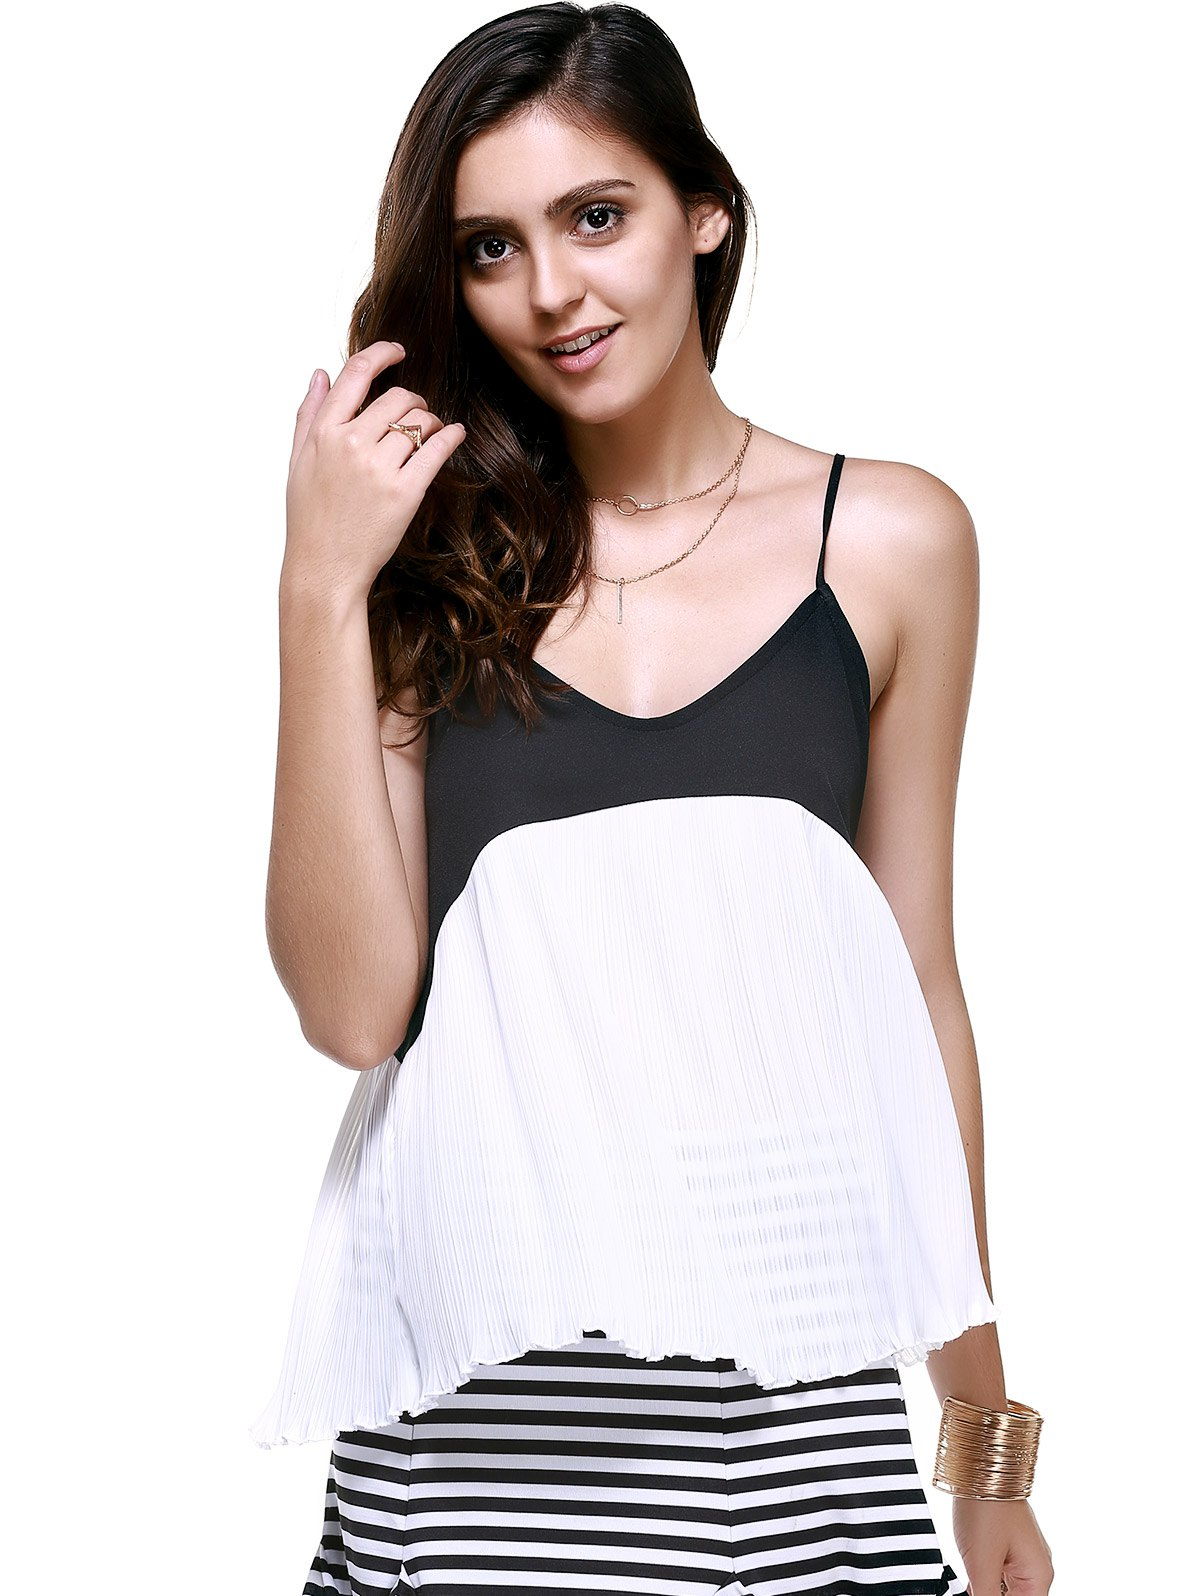 Fashionable V-Neck Spaghetti Strap Ruffle Top For Women - BLACK ONE SIZE(FIT SIZE XS TO M)